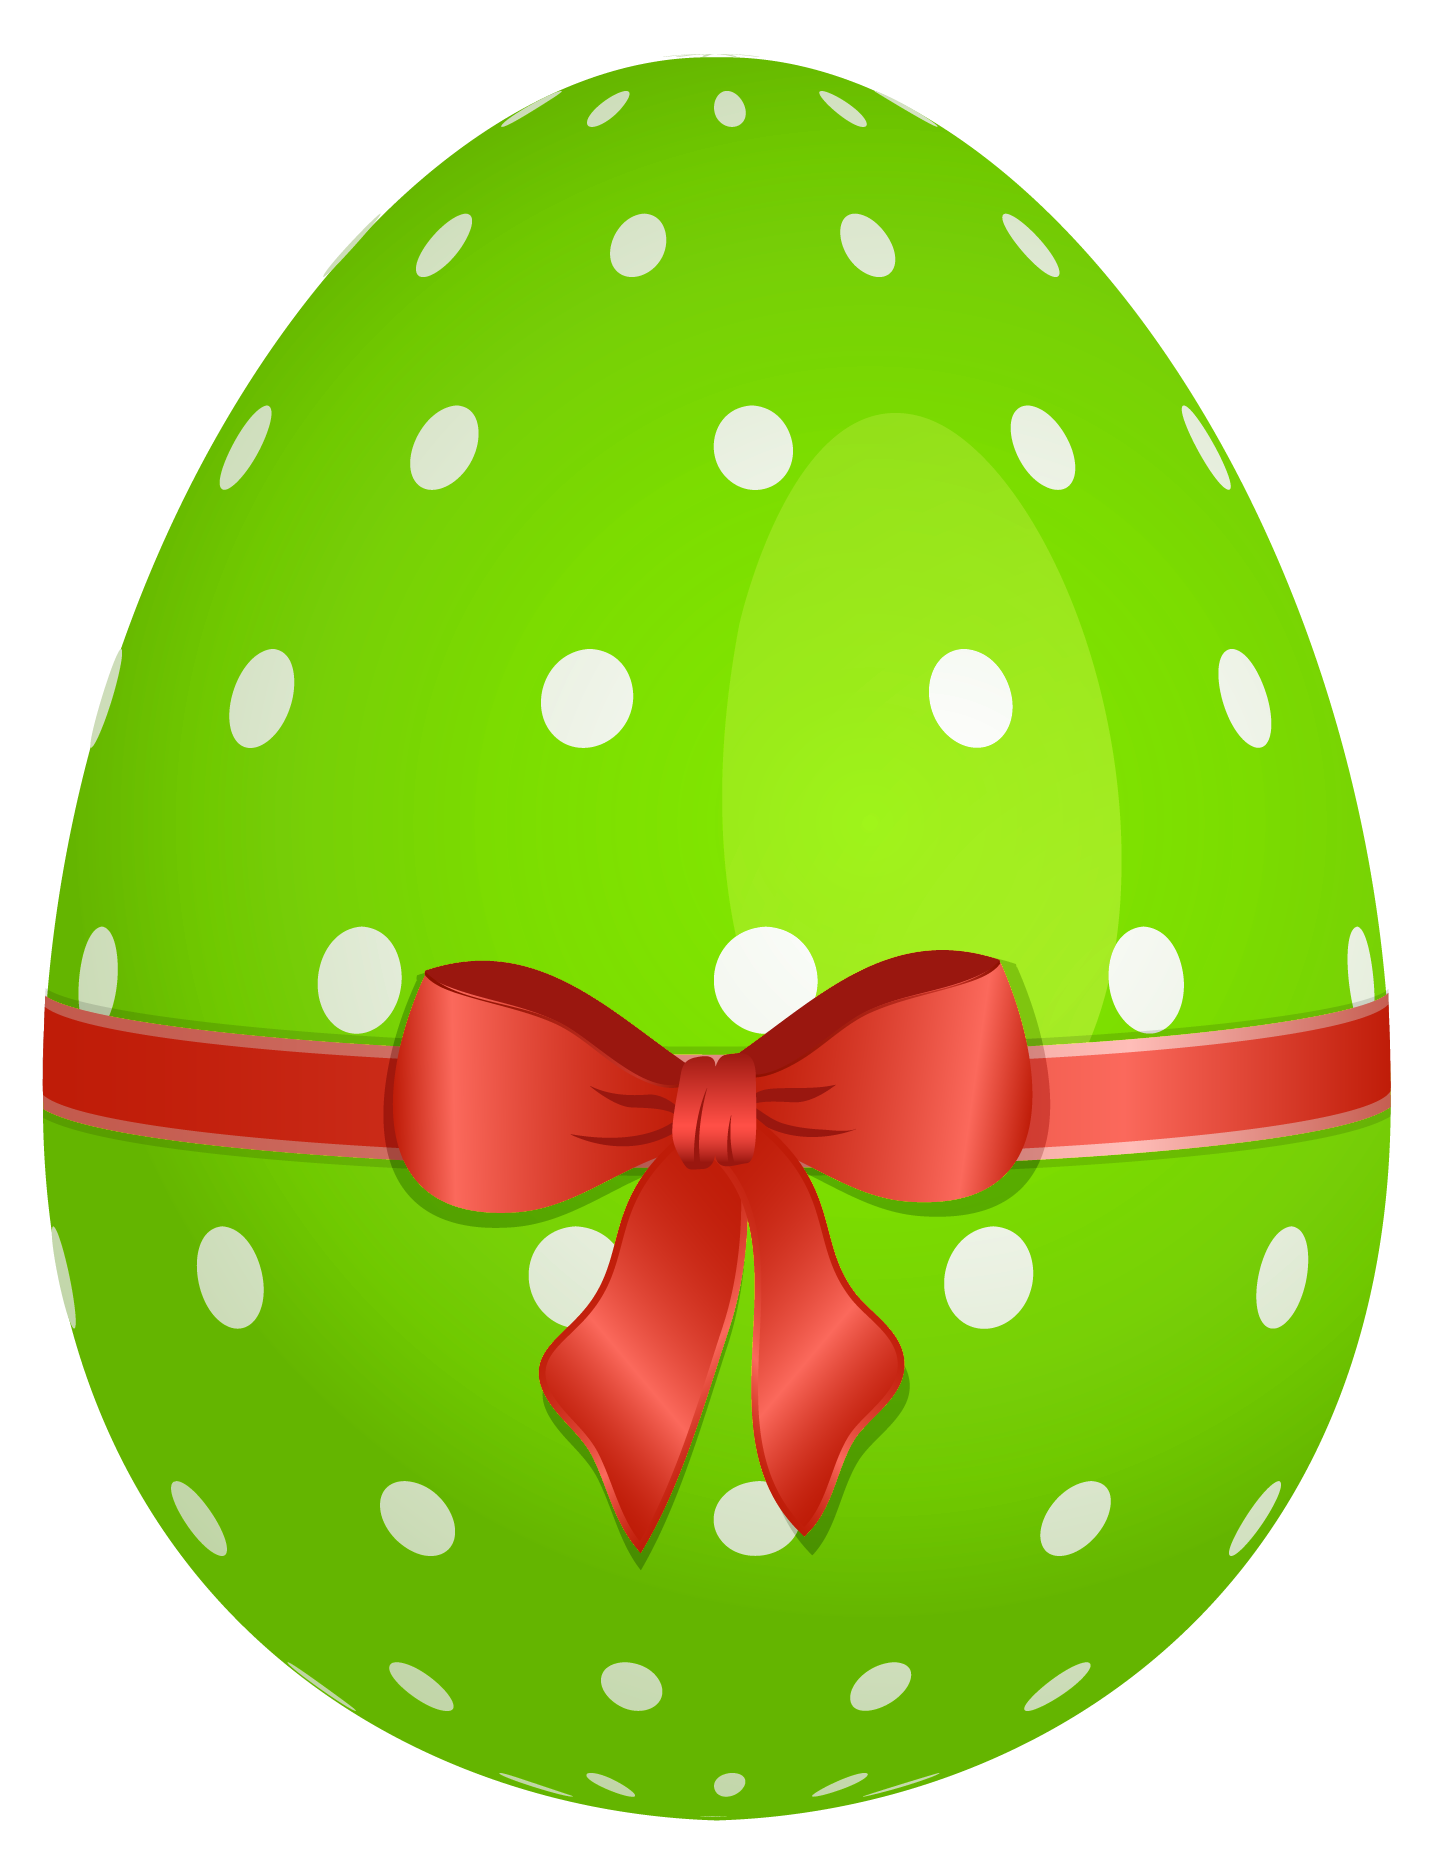 easter egg designs png